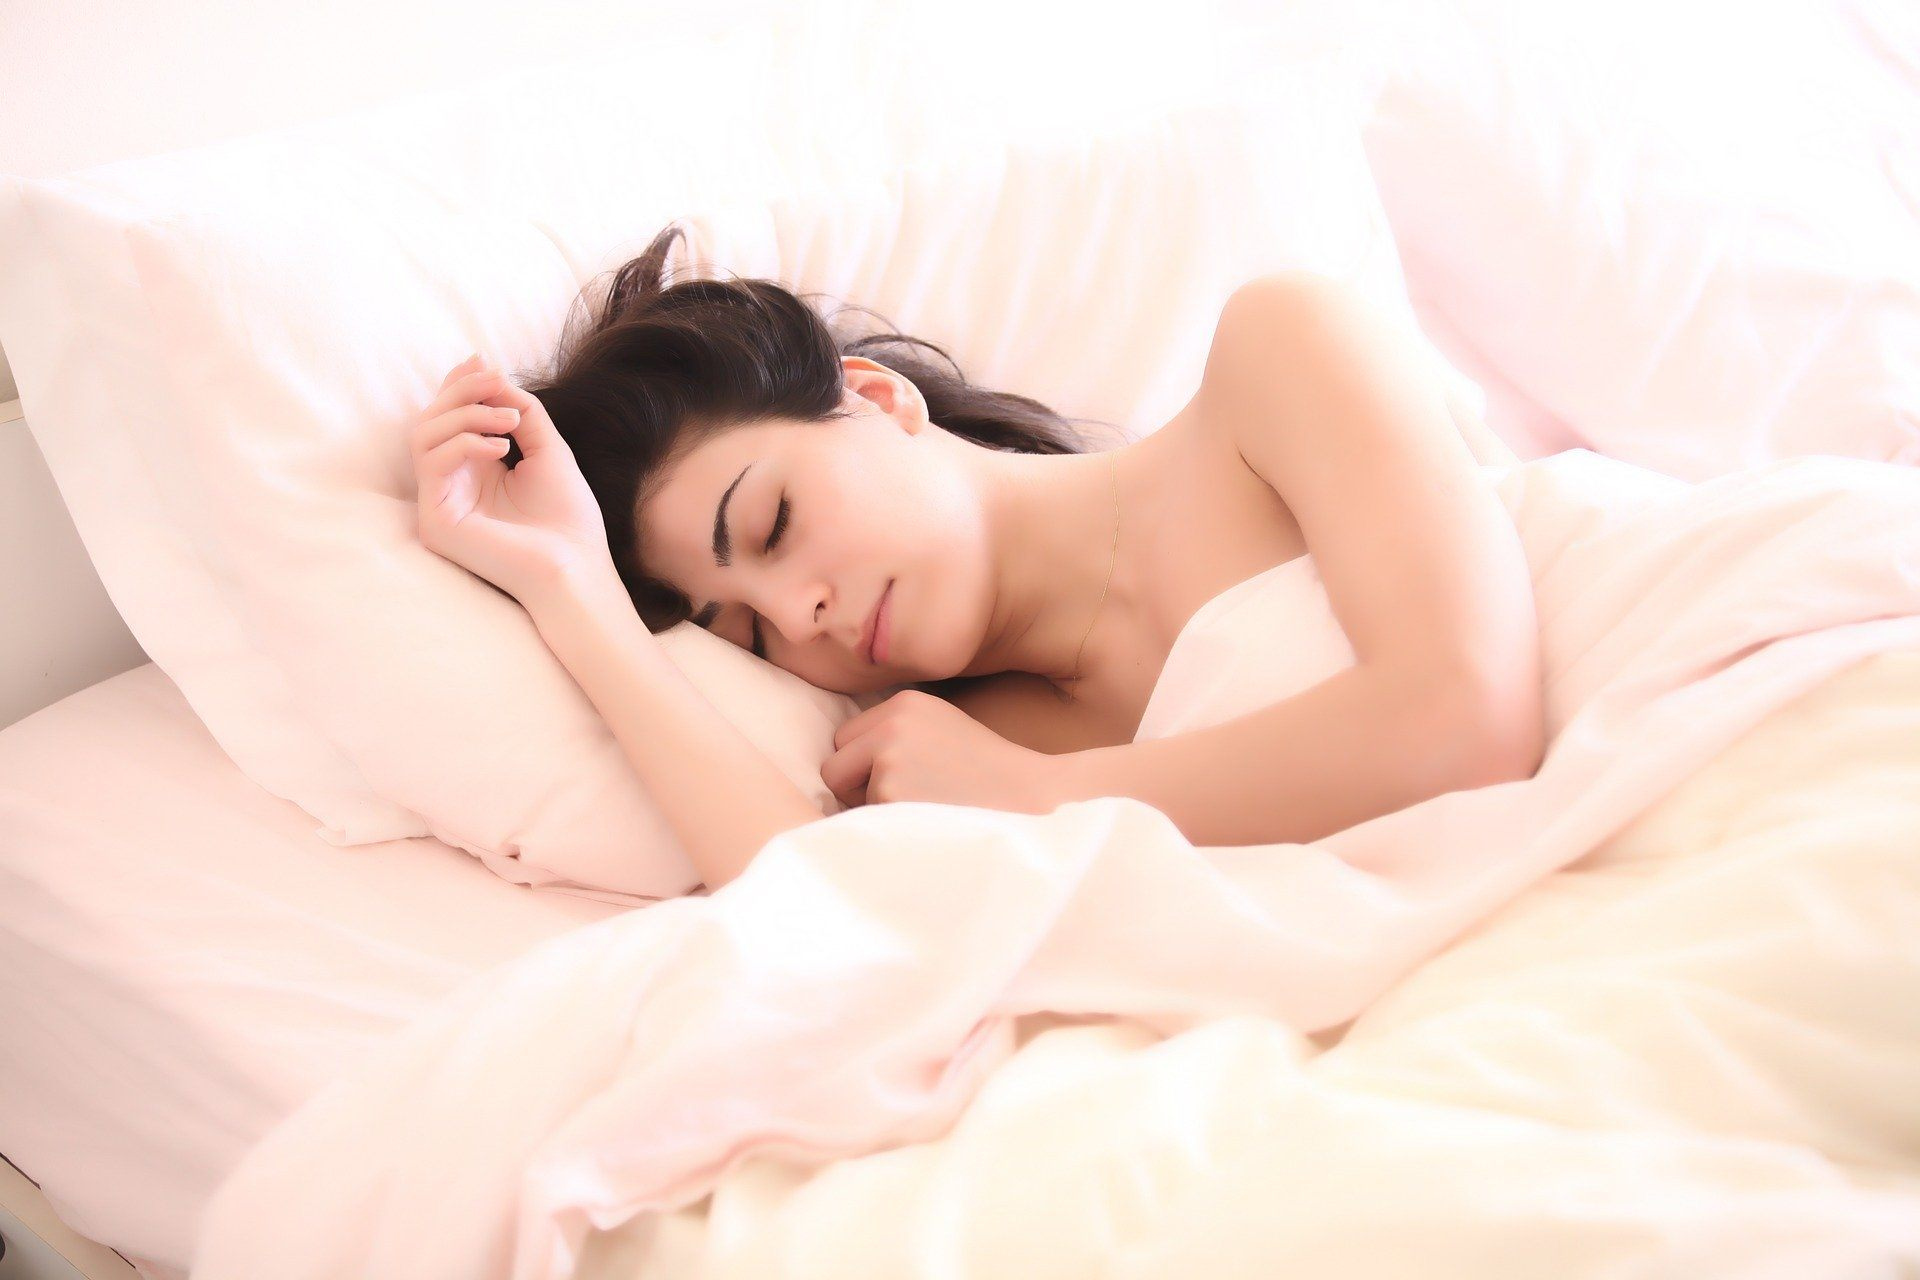 COMMON SLEEP PROBLEMS AND HOW TO TREAT THEM